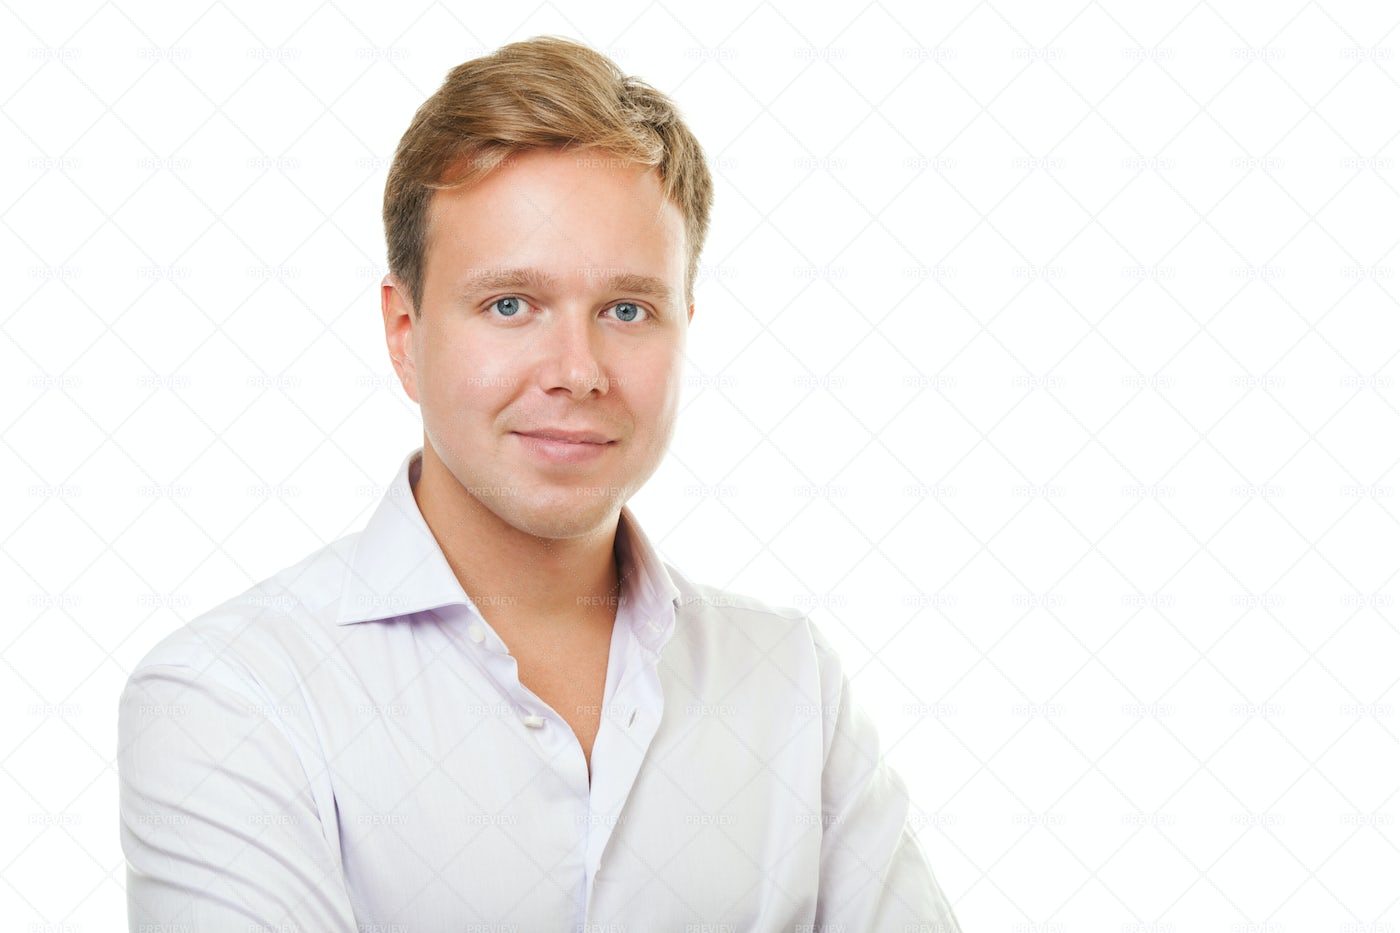 Young Man In White Shirt: Stock Photos